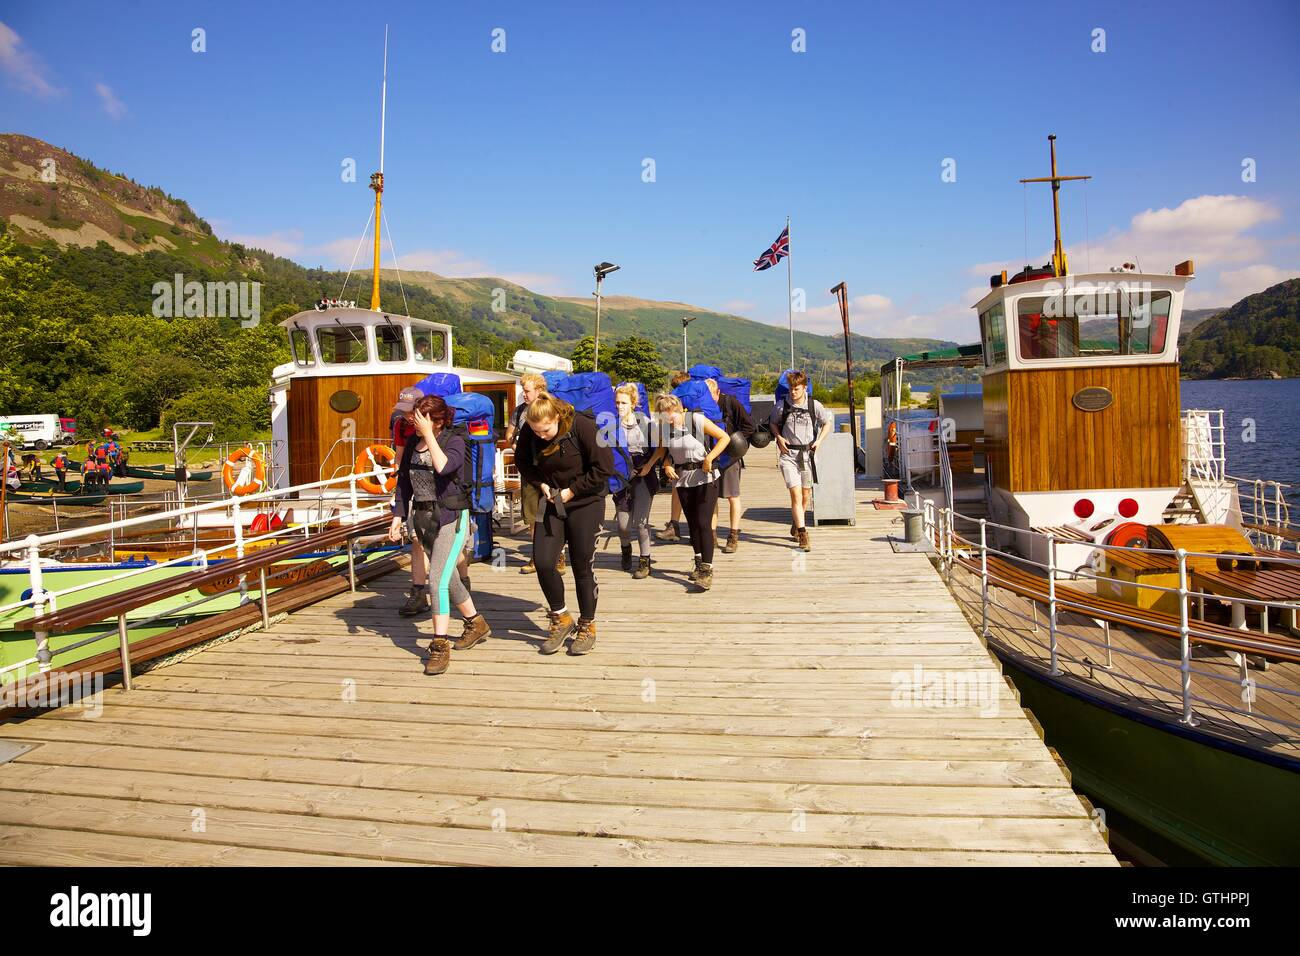 Outdoor pursuits students disembarking a cruise from Ullswater Steamer. Glenridding Pier, Ullswater, Penrith, The - Stock Image